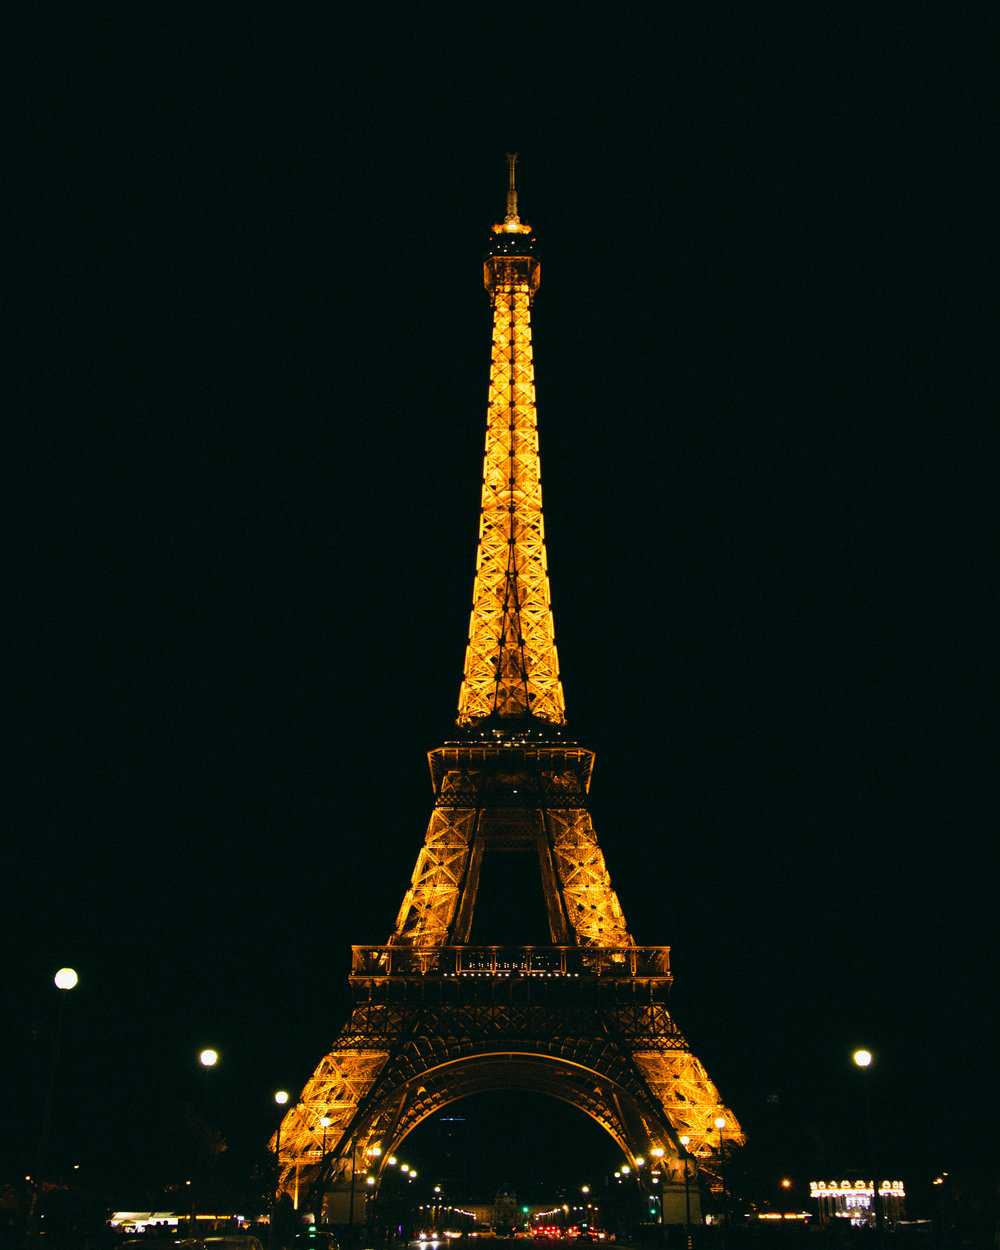 Paris-web-20.jpg